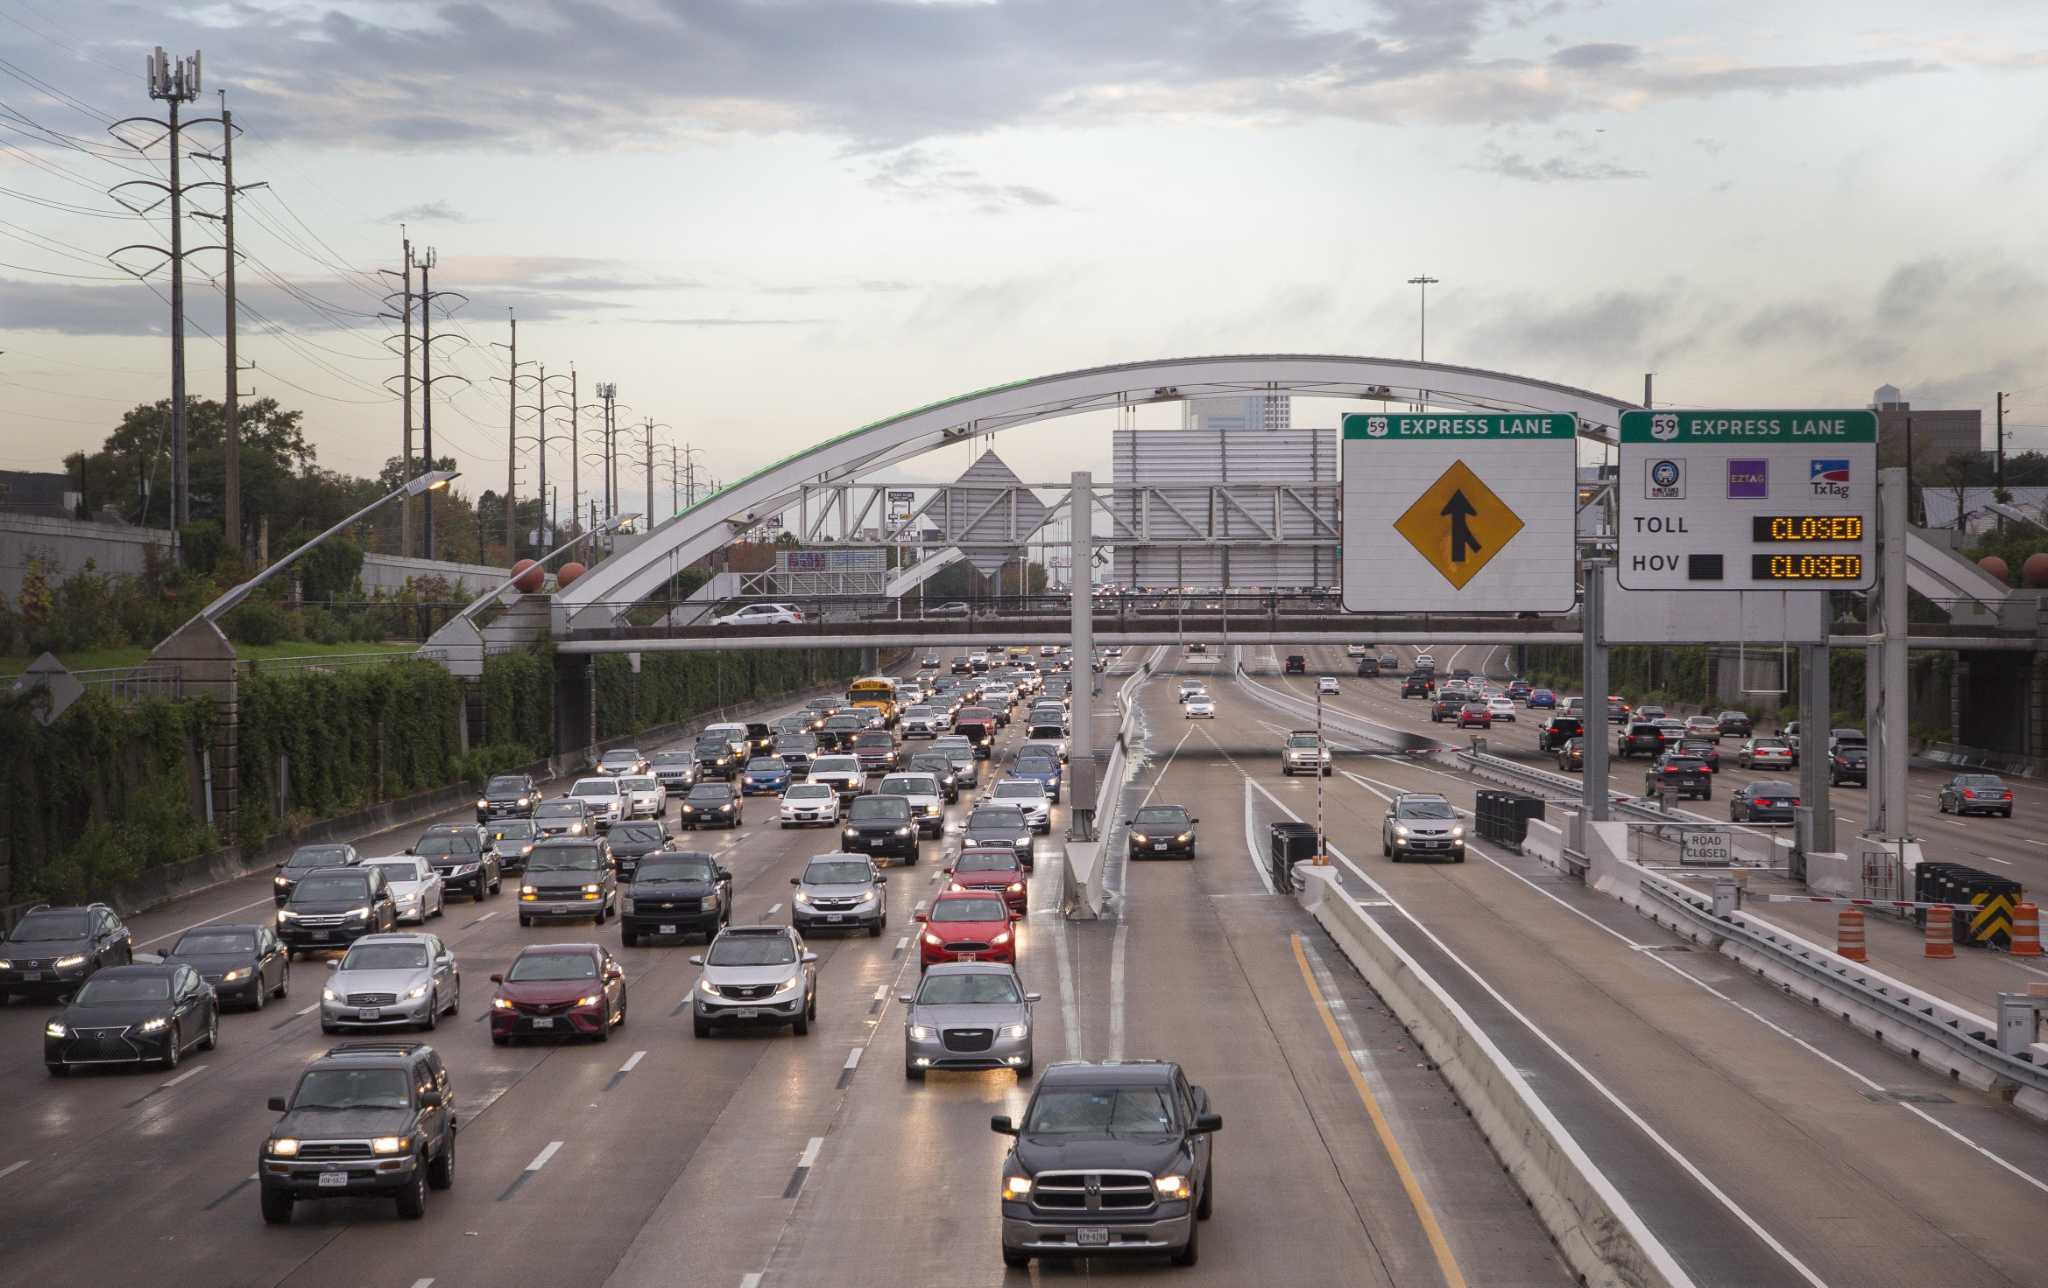 Carpool Lane Rules >> Flipboard Metro To Bump Up Carpool Lane Rules To 3 During